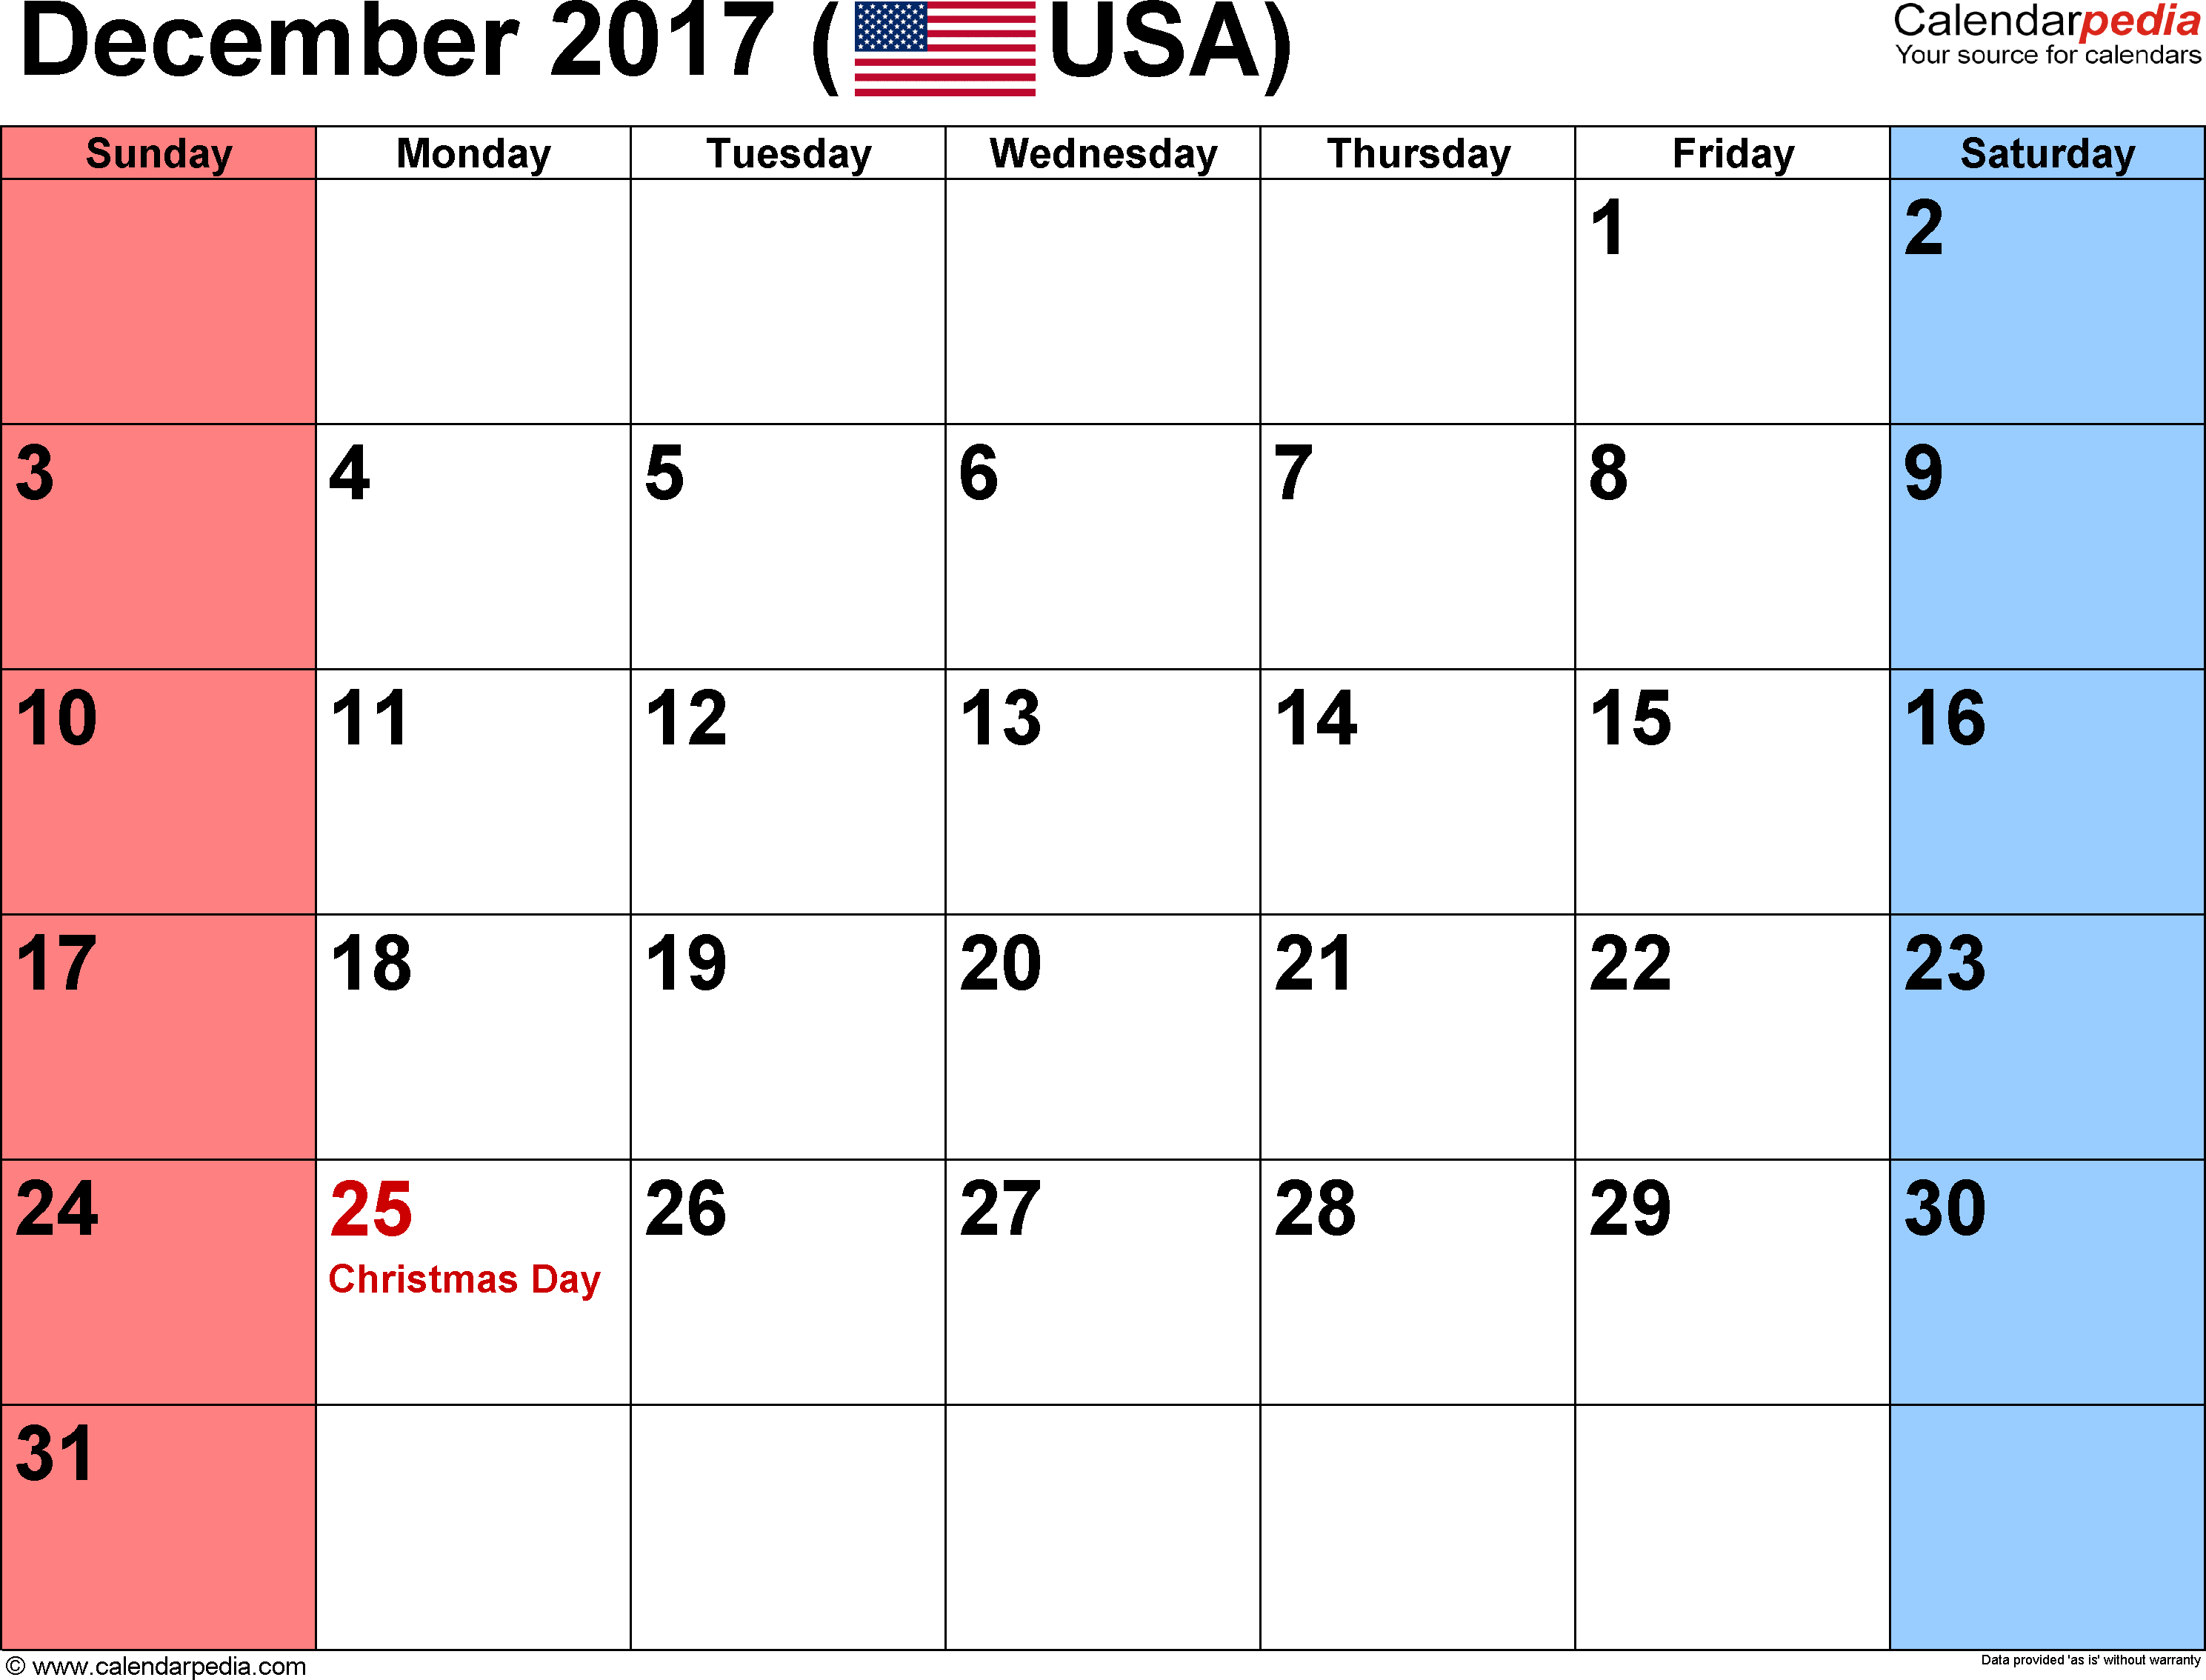 December 2017 Calendars for Word, Excel & PDF